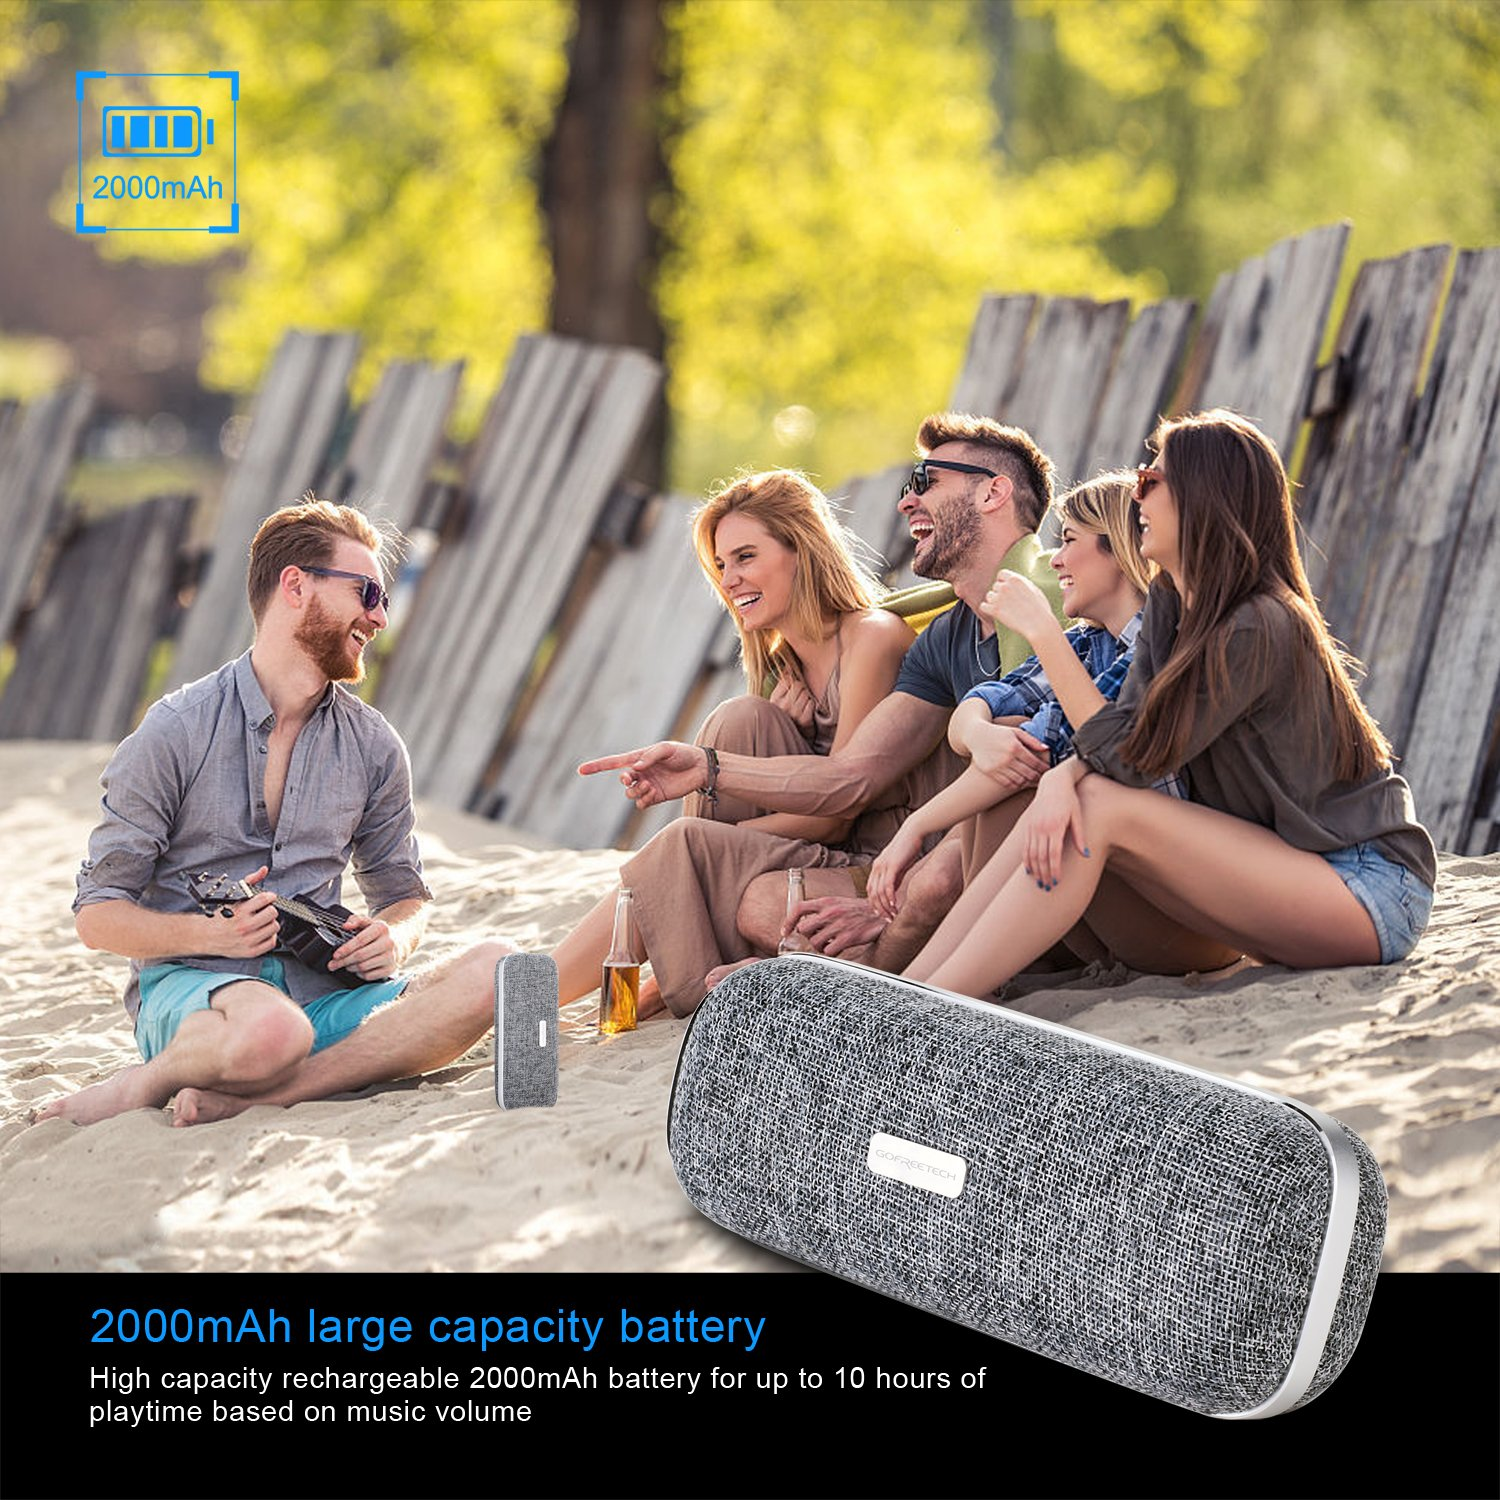 Wireless Bluetooth Speaker, Portable Classic Elegant Stereo Speakers with HD Sound Audio and Enhanced Bass, Bluetooth 4.2/AUX line/Dual Driver Speakers for Home, Beach, Travel, Party - Gofreetech by GOFREETECH (Image #5)